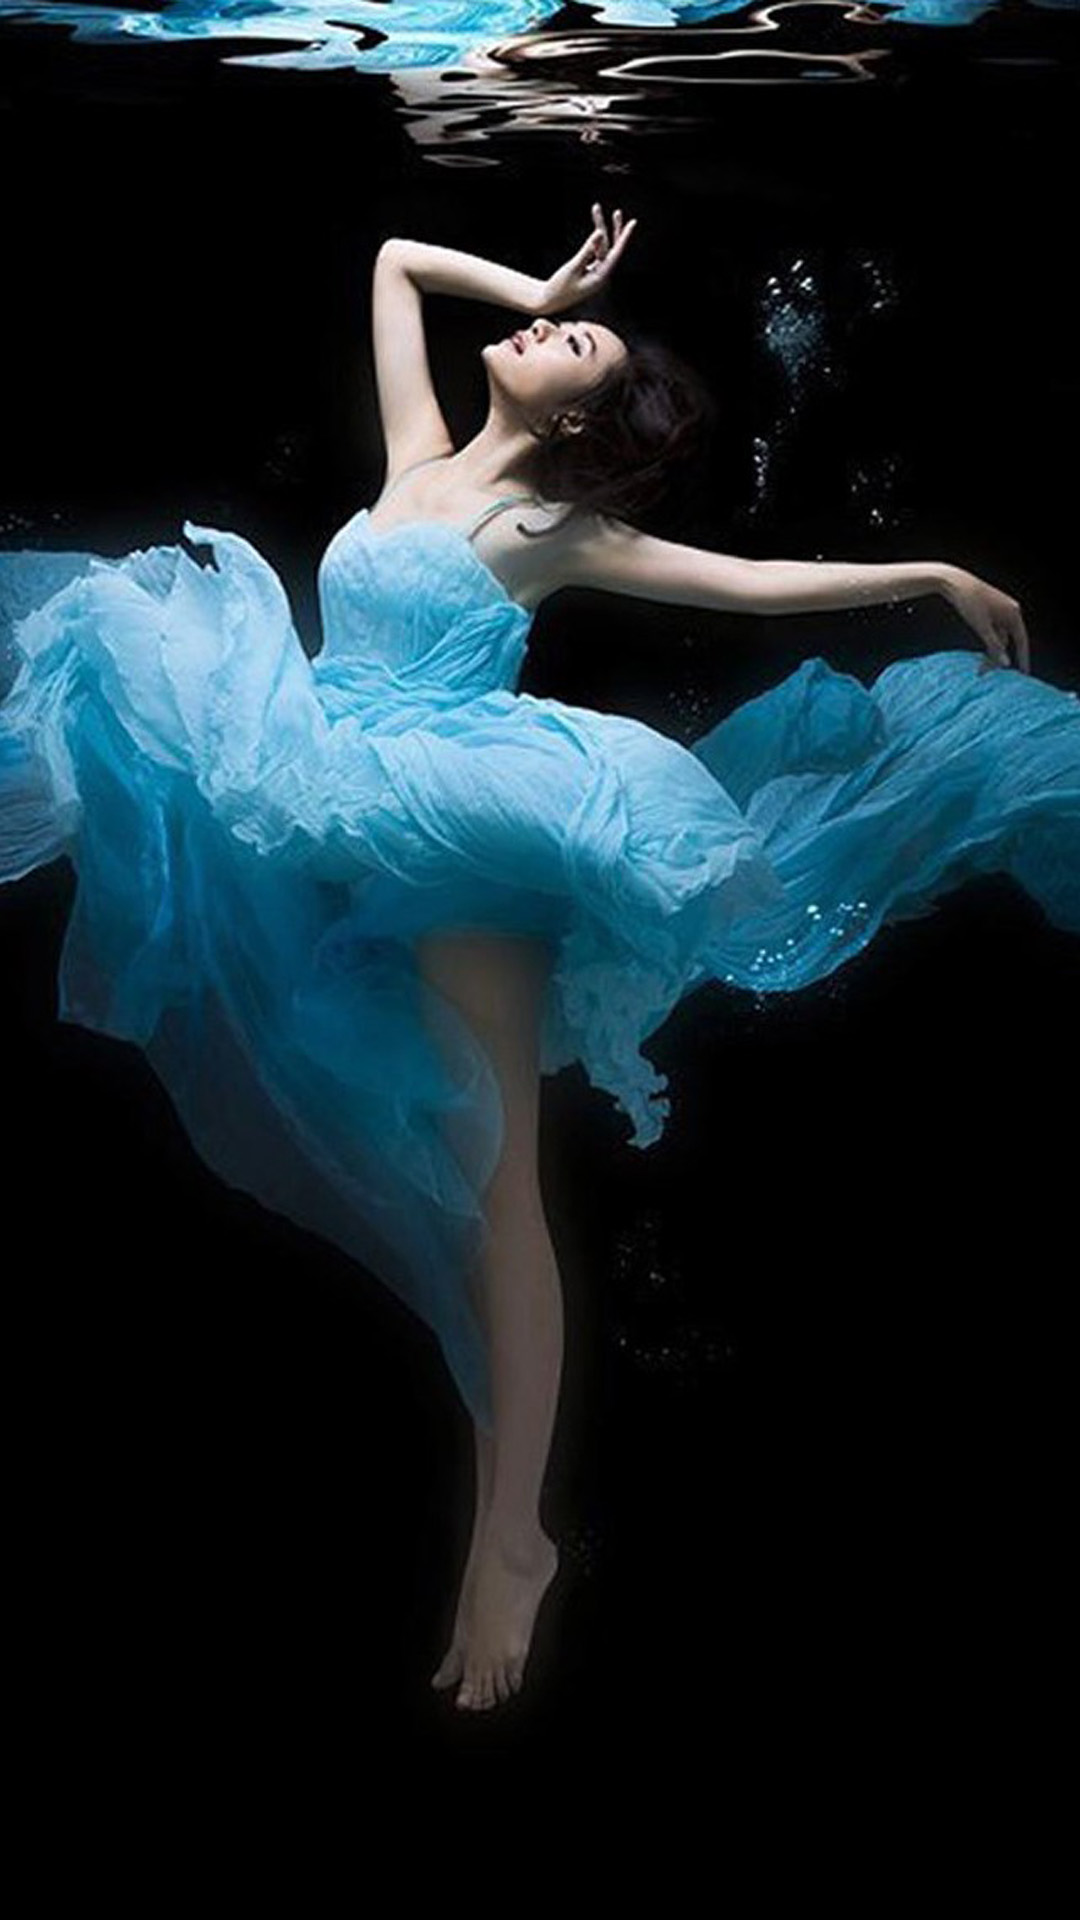 Underwater Ballerina Iphone Wallpapers